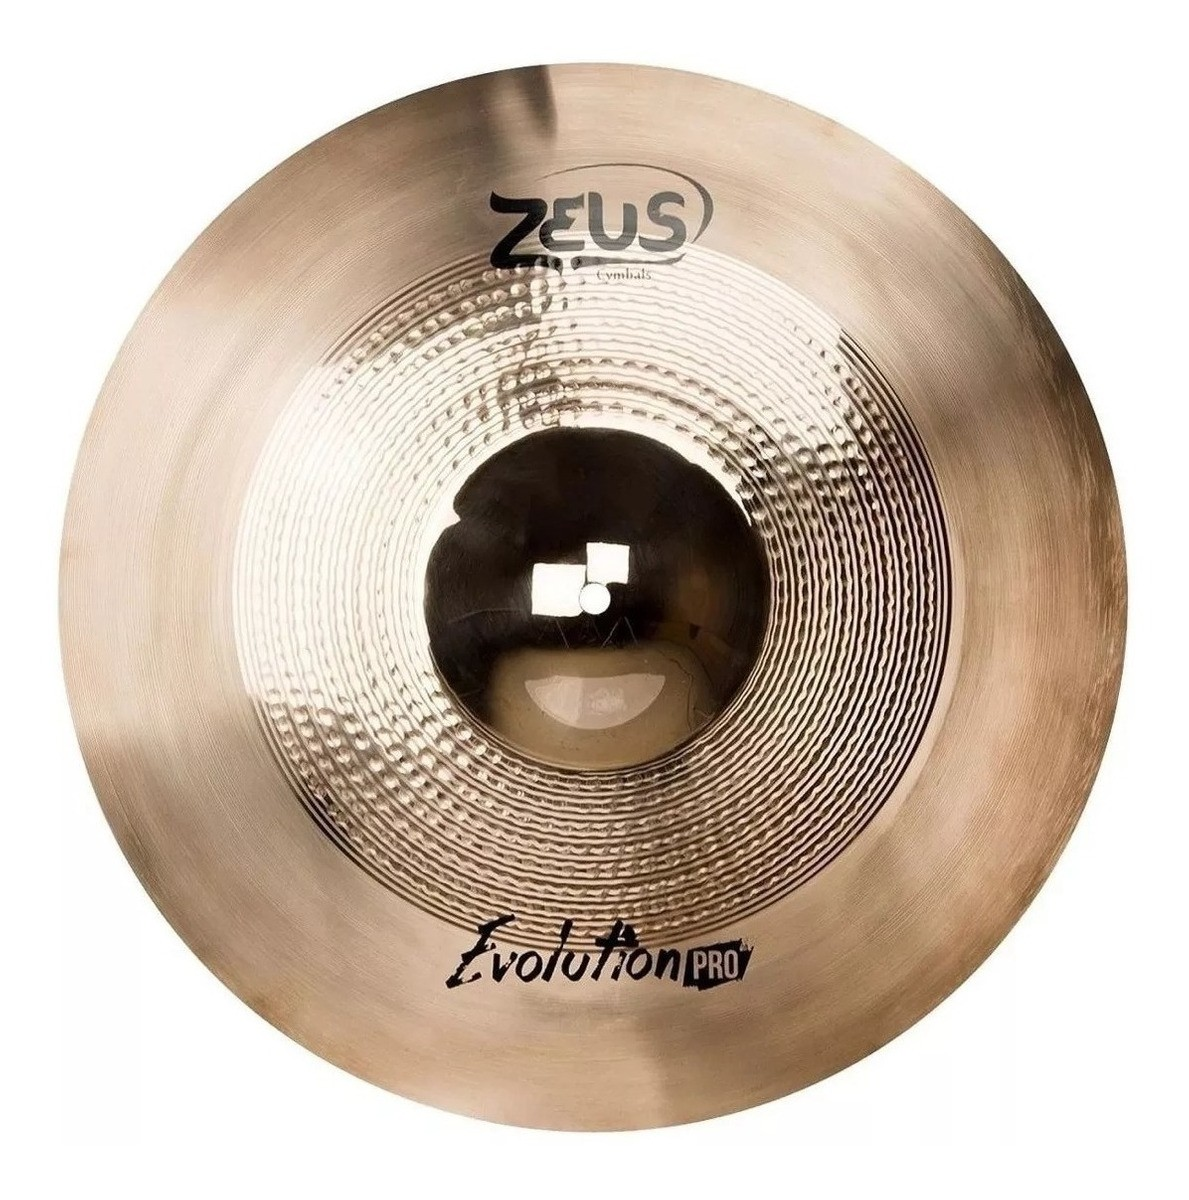 Prato Zeus Evolution Pro Crash 18 ZEPC18